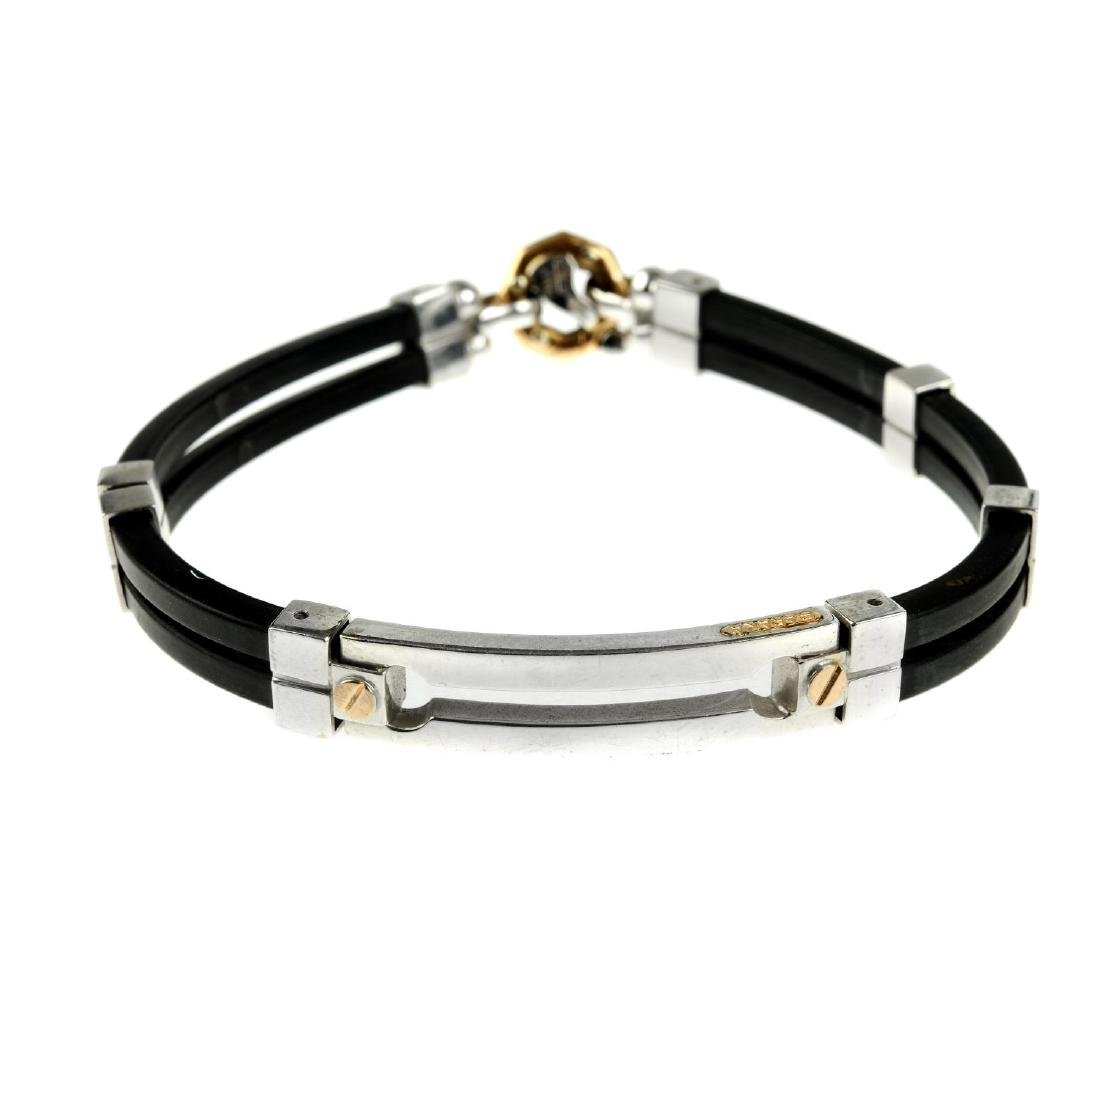 BARAKA - a bracelet with diamond accent. The